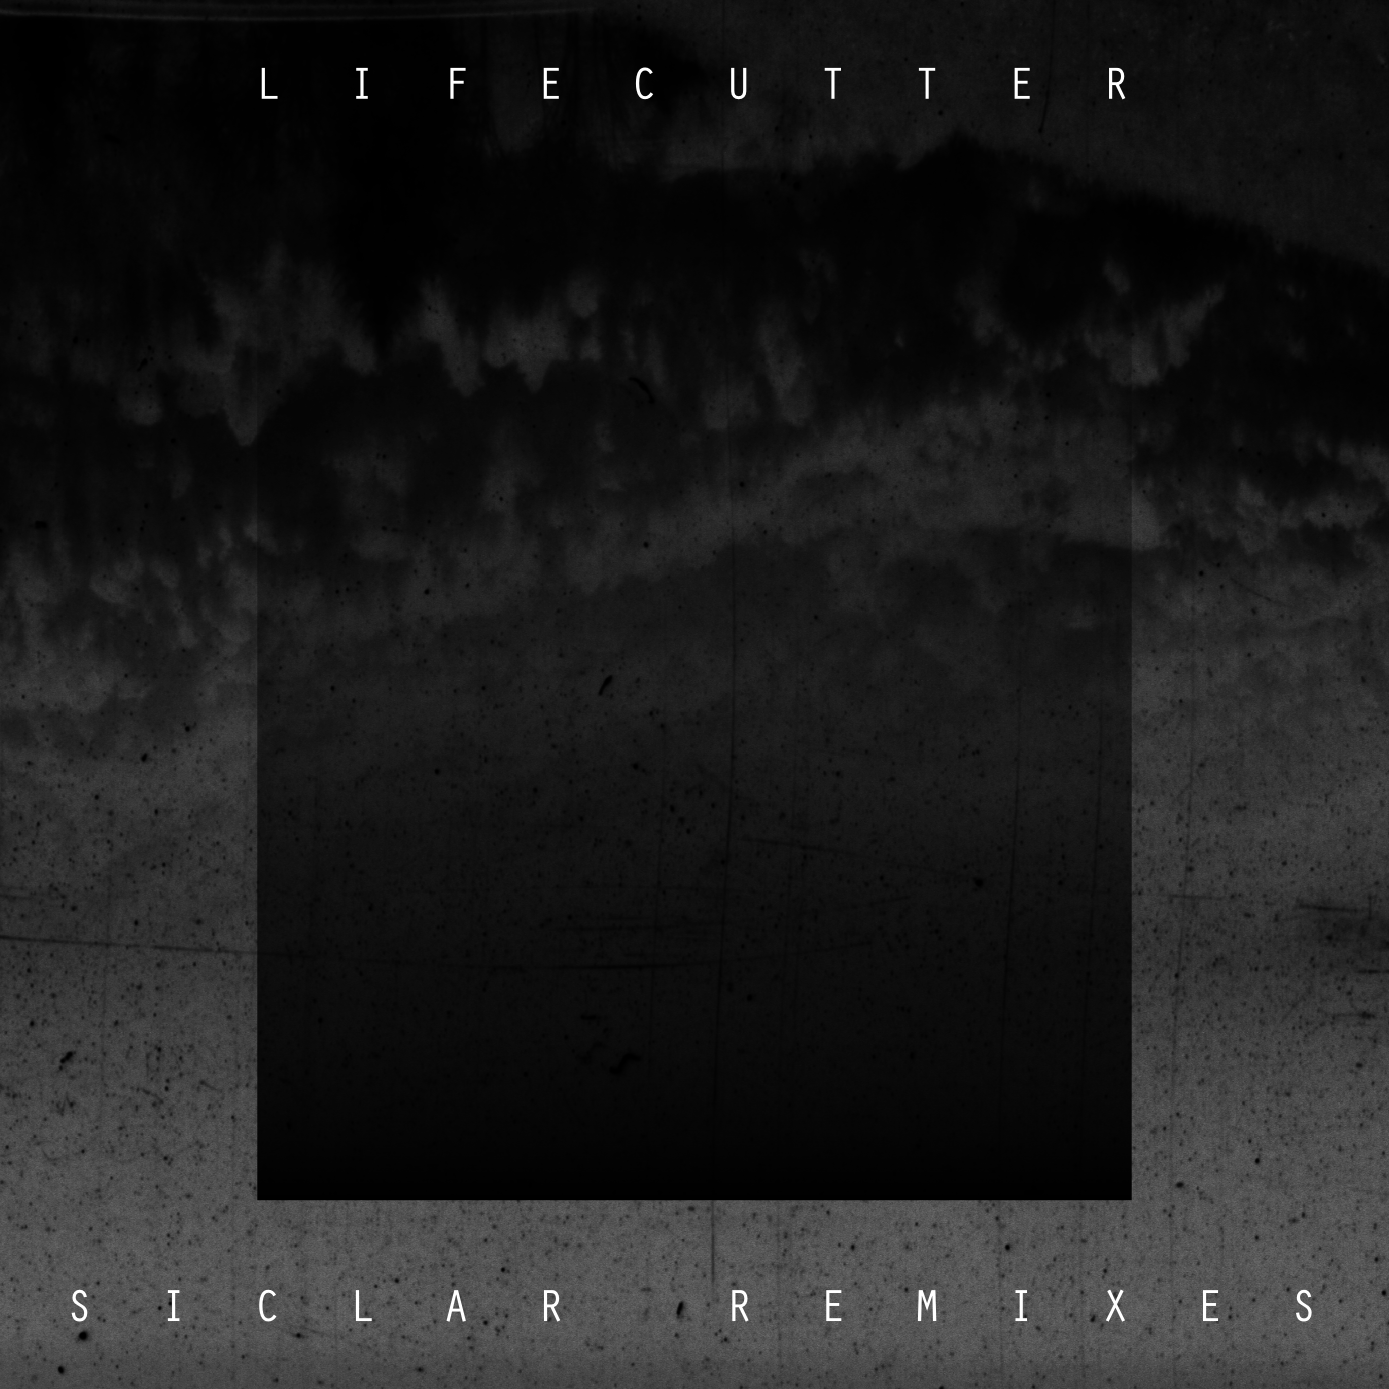 lifecutter remixes cover 2